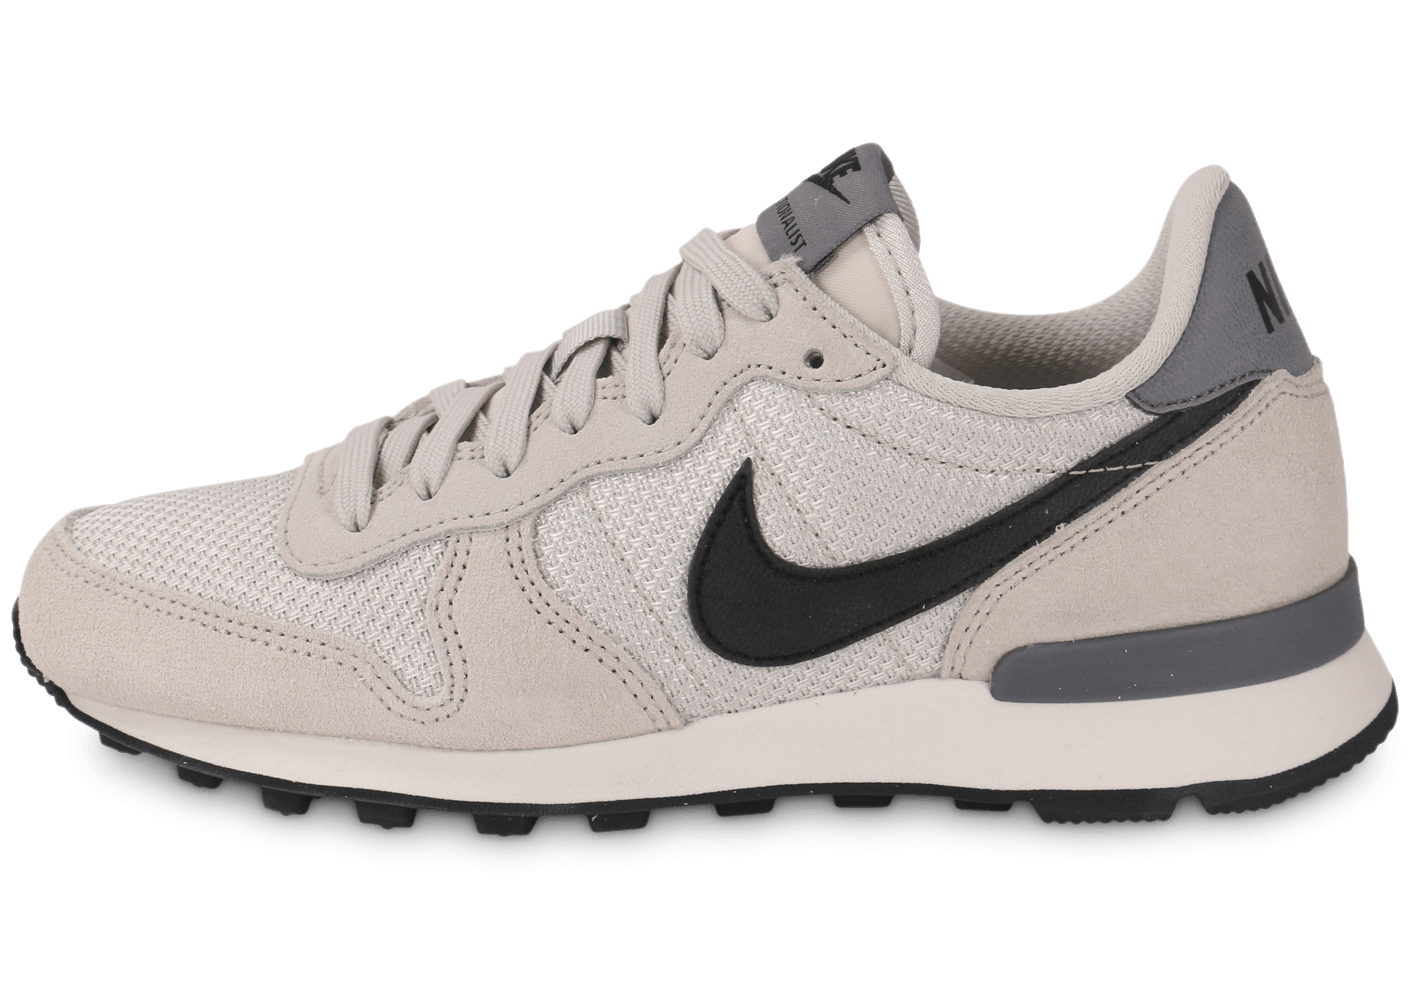 3caa7cdbb76a ... INTERNATIONALIST Nike Internationalist grise - Chaussures Chaussures -  Chausp nike INTERNATIONALIST Large Choix De ...